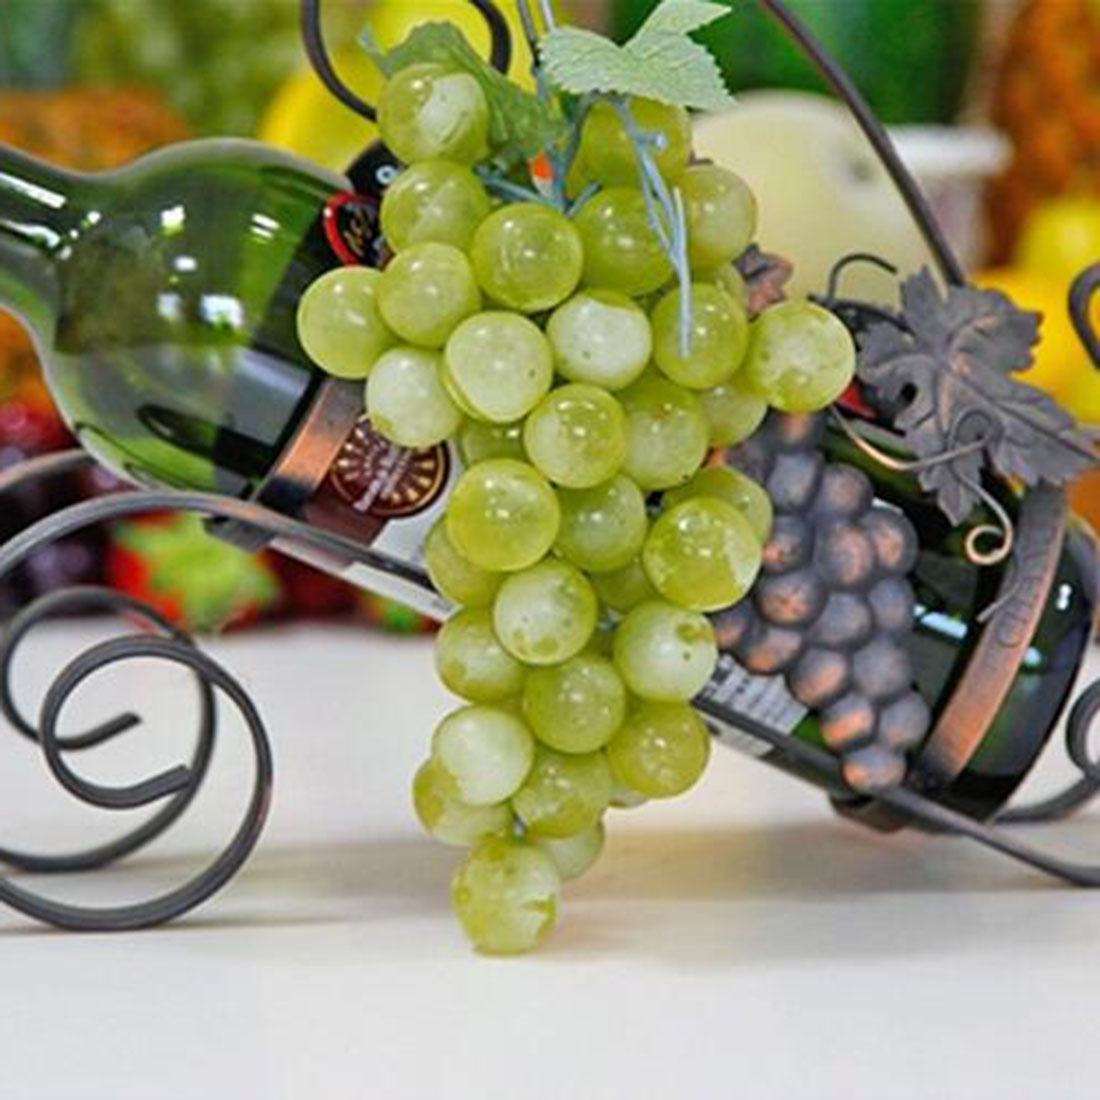 22 85pcs grain lifelike artificial grapes plastic fake for Artificial fruit for decoration